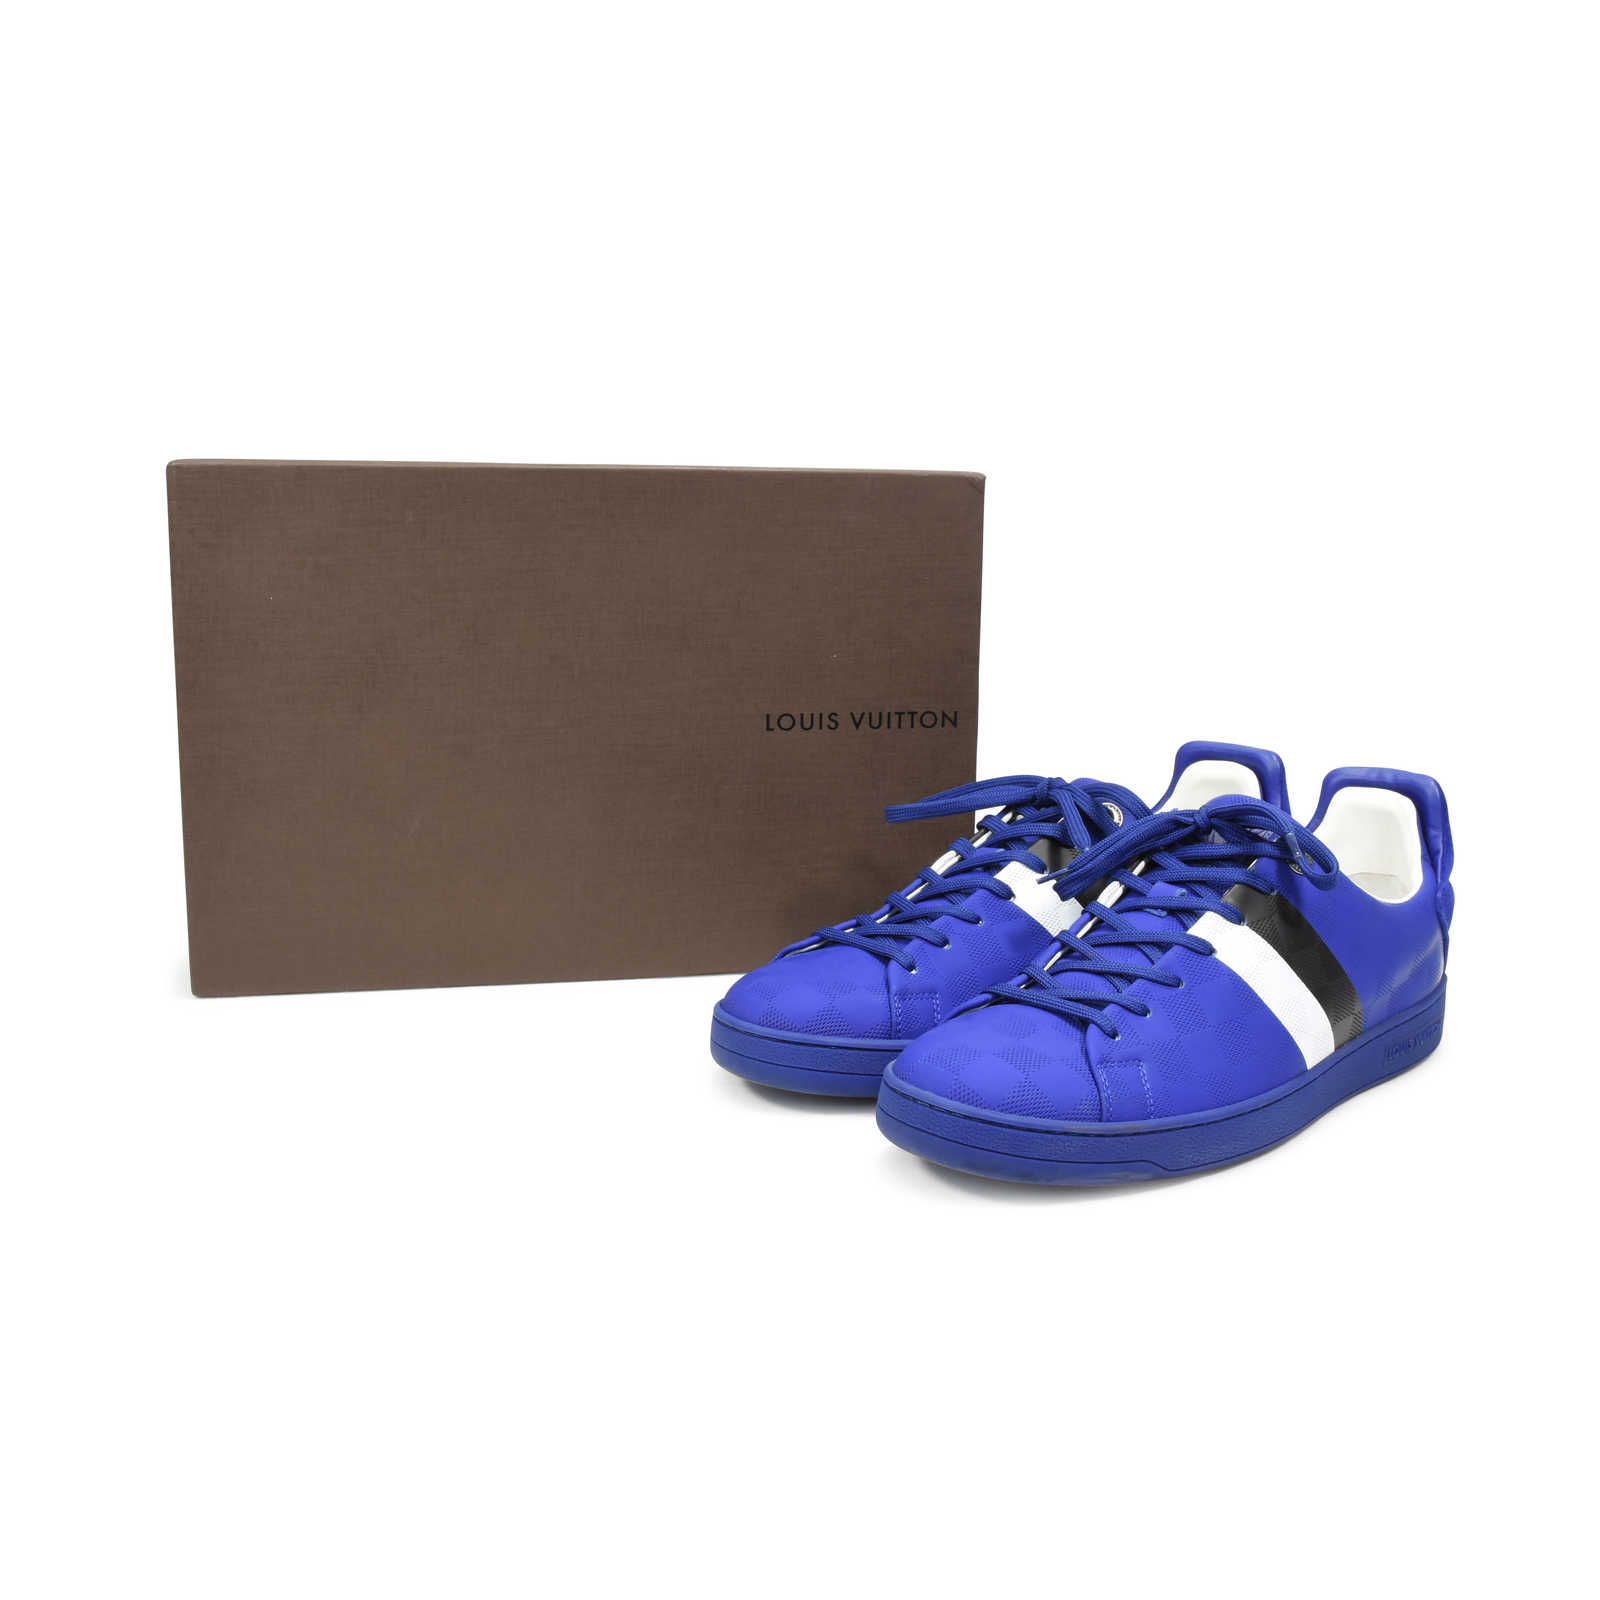 10a44364c6344 ... Authentic Second Hand Louis Vuitton Frontrow Sneaker (PSS-332-00018) -  Thumbnail. View Image